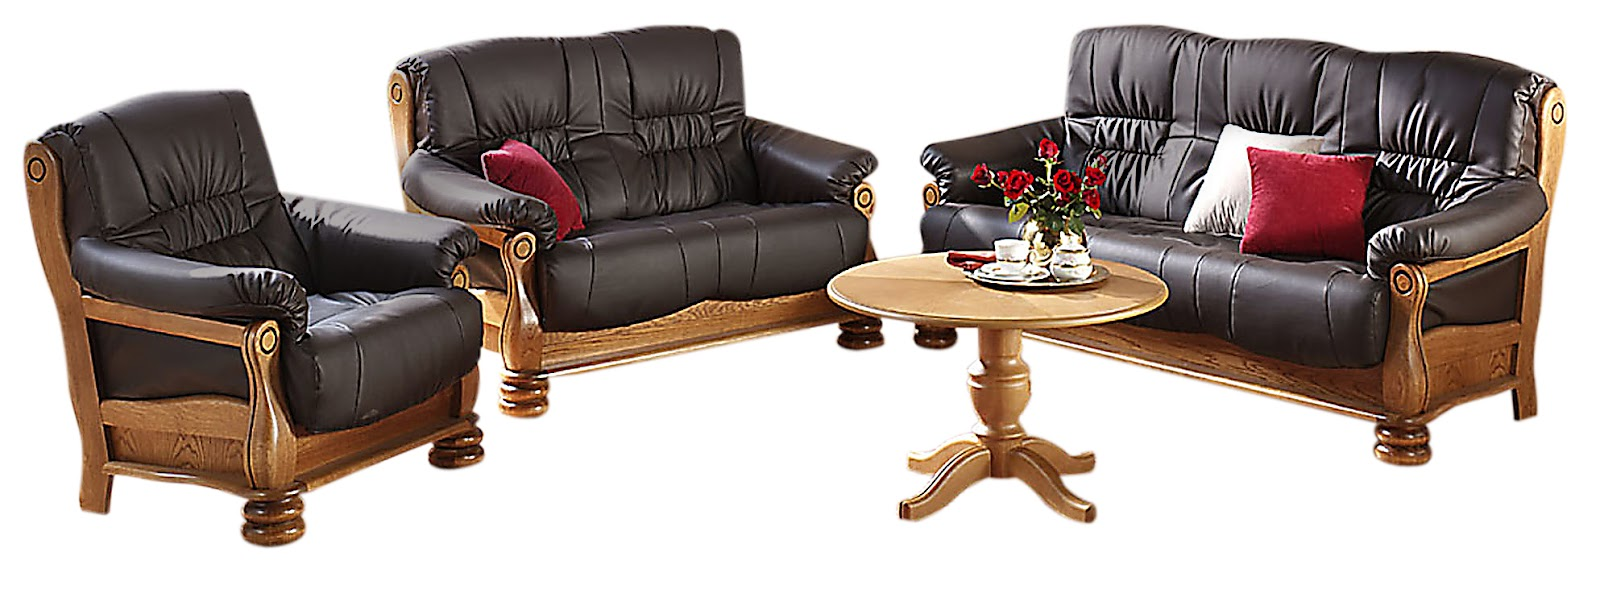 Unique Wooden Sofa Set 91 On Sofas and Couches Ideas with Wooden Sofa Set